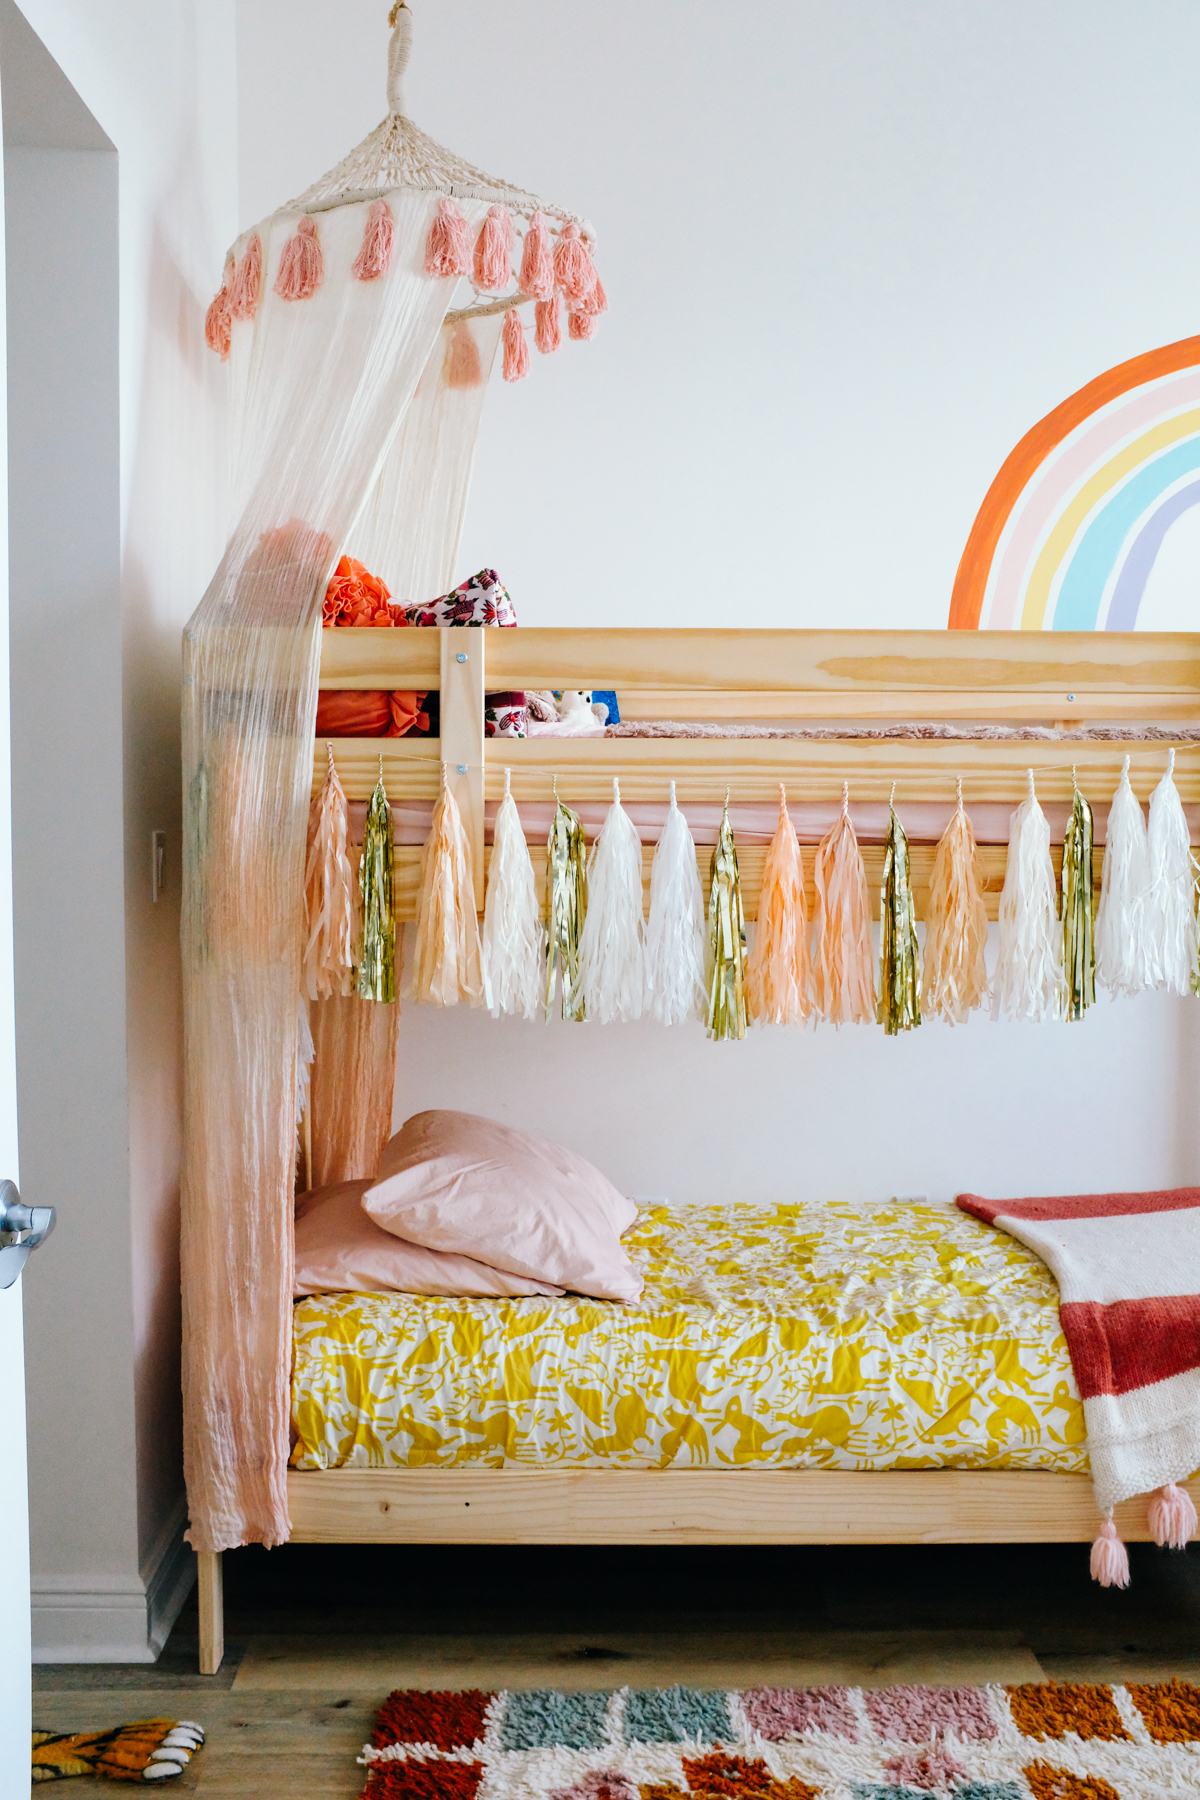 Our New Condo – Marlowe's Room Tour